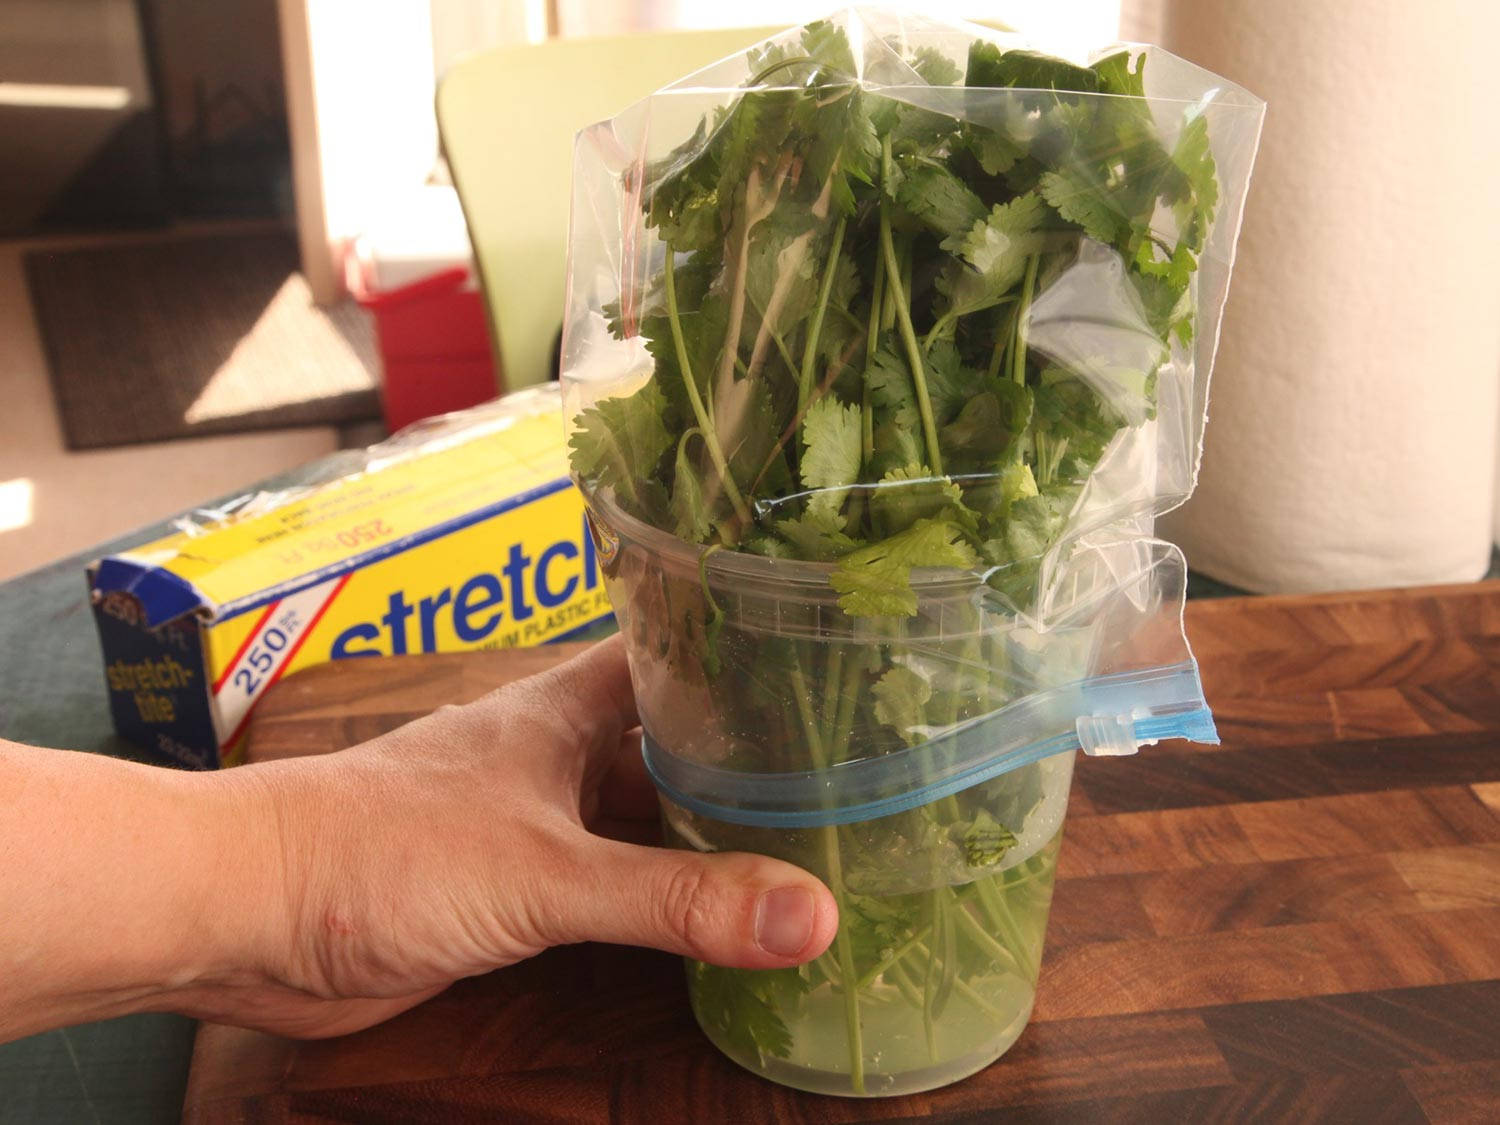 Storing your fresh herbs so they keep more than a few days is essential. This serious eats post is an excellent resource for which herbs to store what way and for how long. -